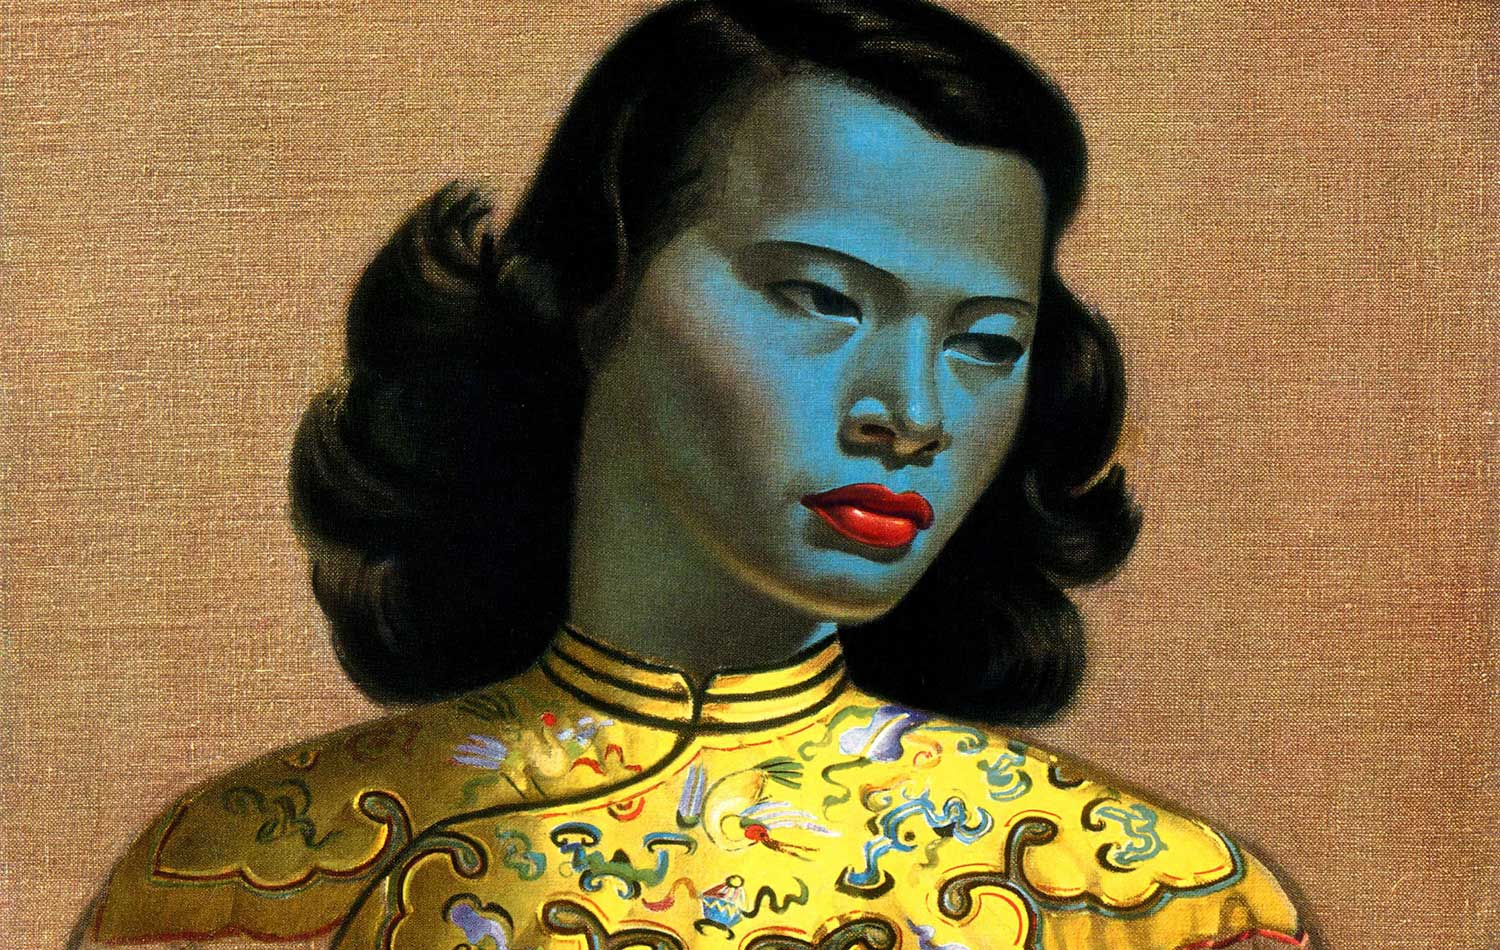 Painting of a Chinese Girl by Vladimir Tretchikoff (1952)